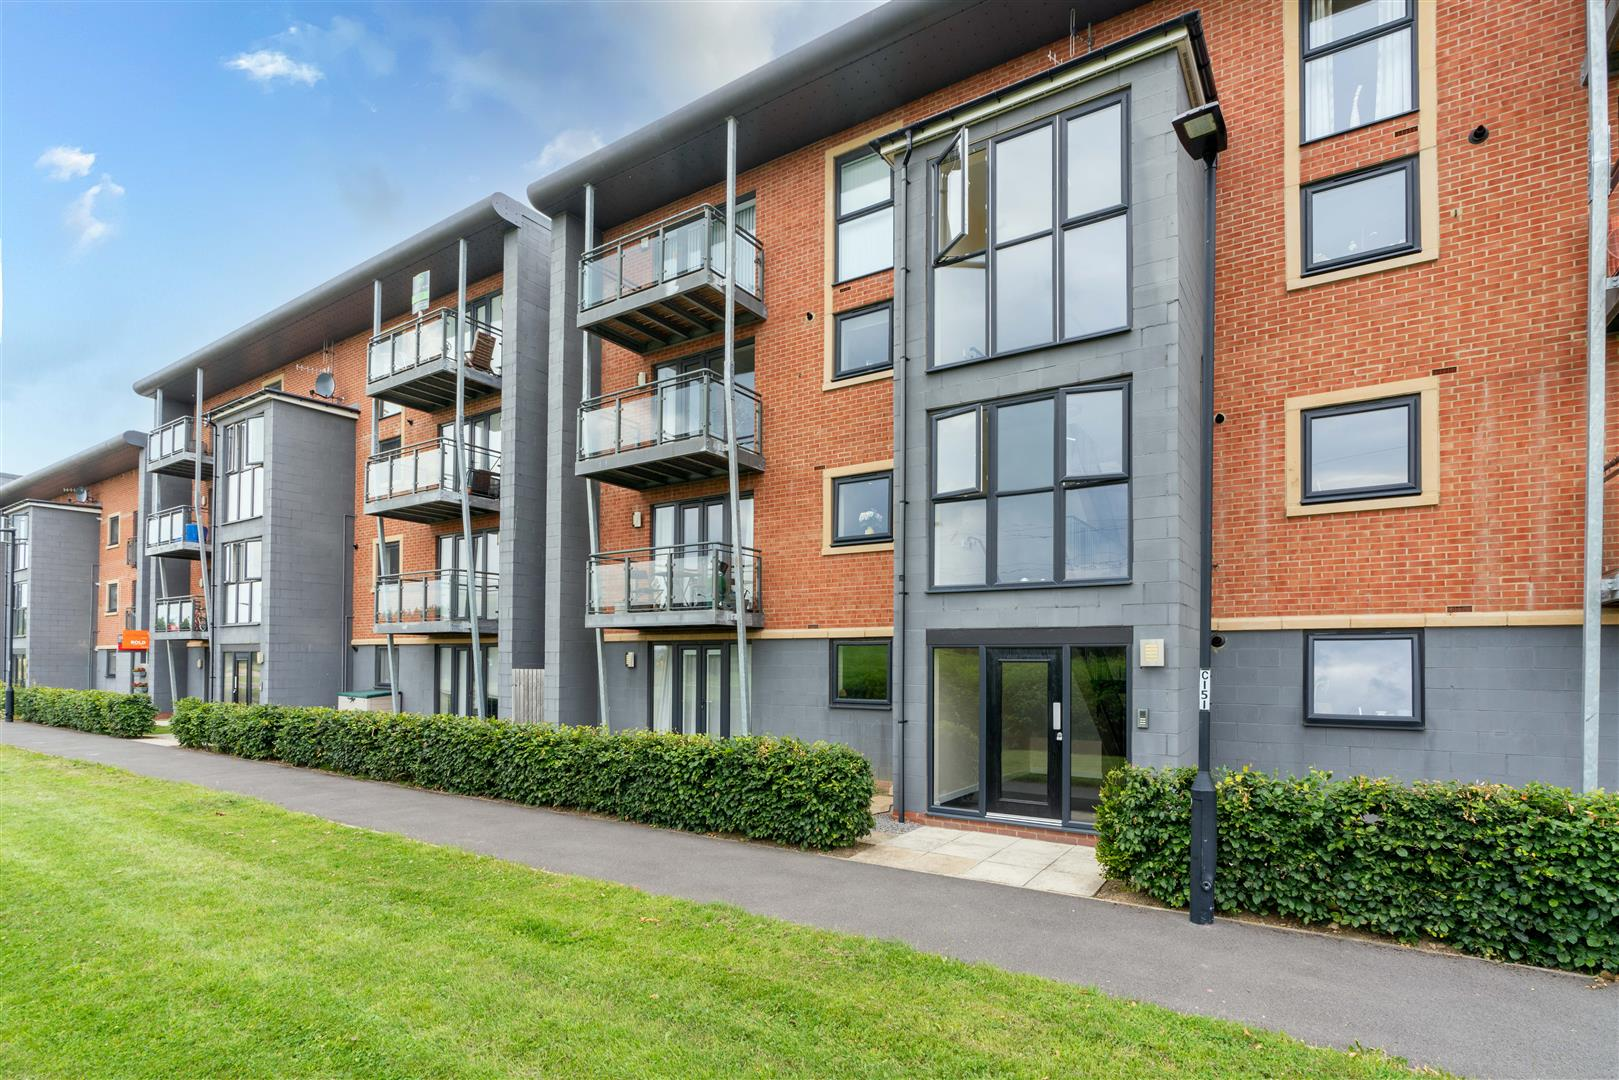 2 bed apartment for sale in Elmwood Park Court, Newcastle Upon Tyne - Property Image 1